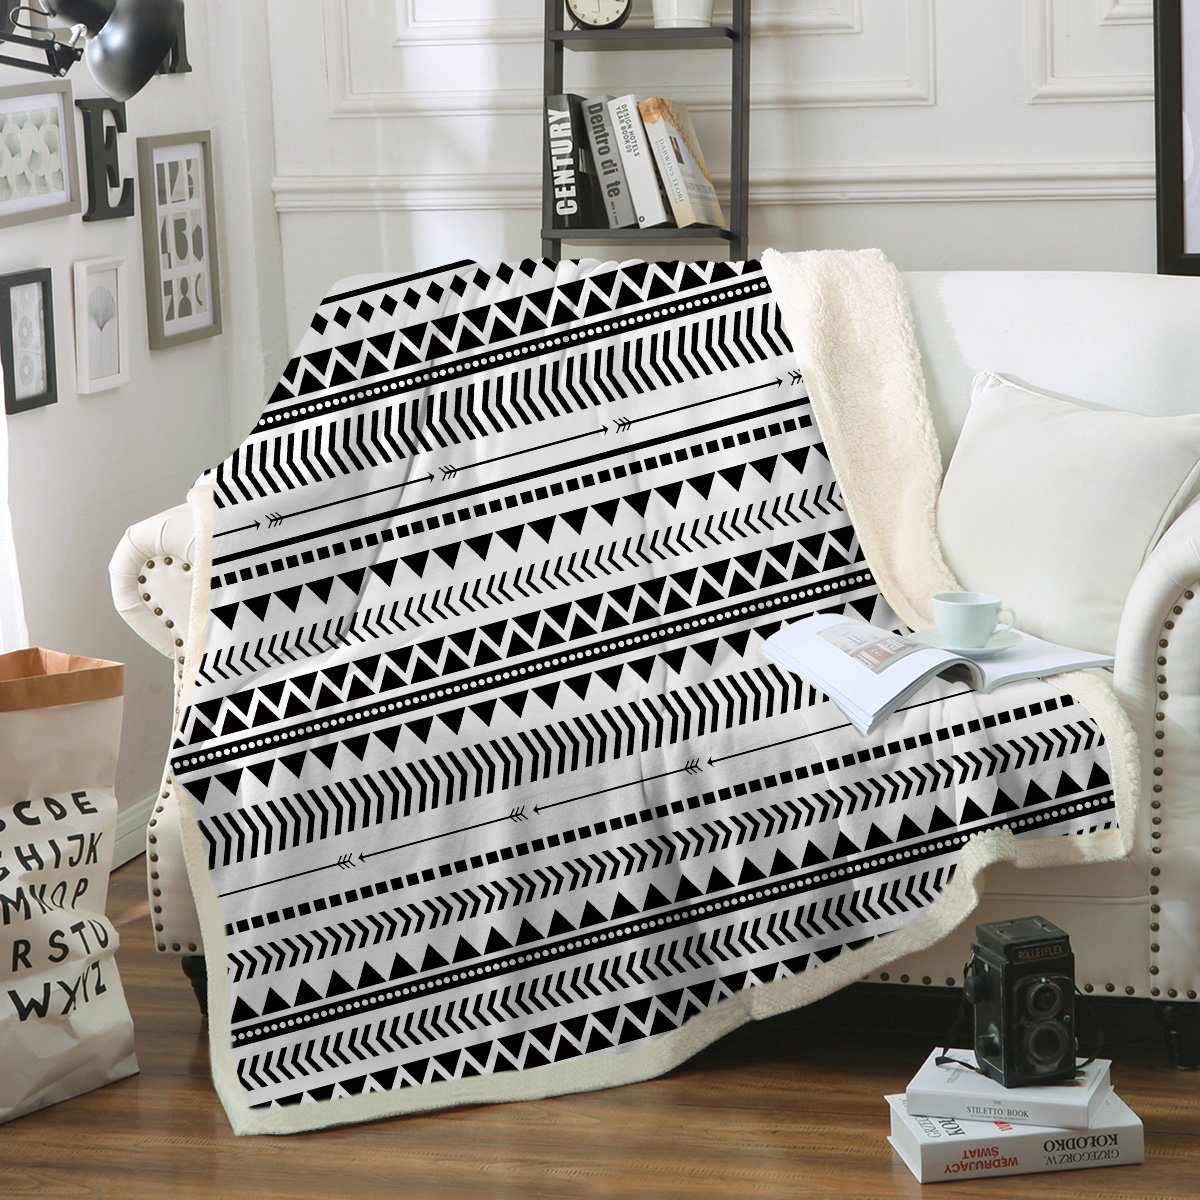 Outstanding Sleepwish Aztec Throw Blanket Black White Triangle Blanket Tribal Geometric Fleece Sherpa Throw Blanket For Couch Bed Sofa 60 X 80 Inch Dailytribune Chair Design For Home Dailytribuneorg